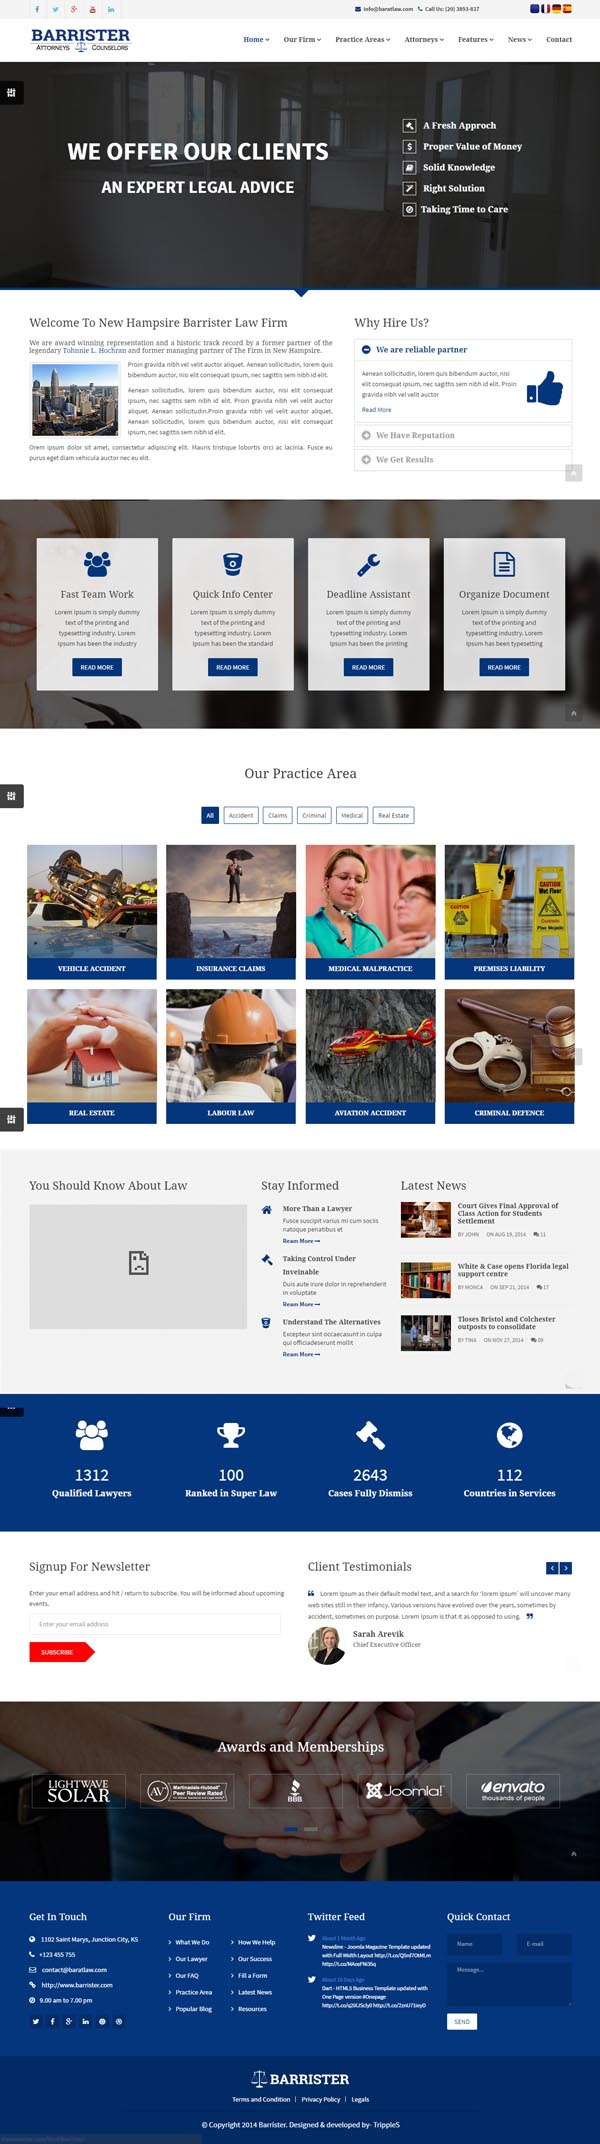 New Responsive Html5 Website Templates Website Template Templates Html5 Templates